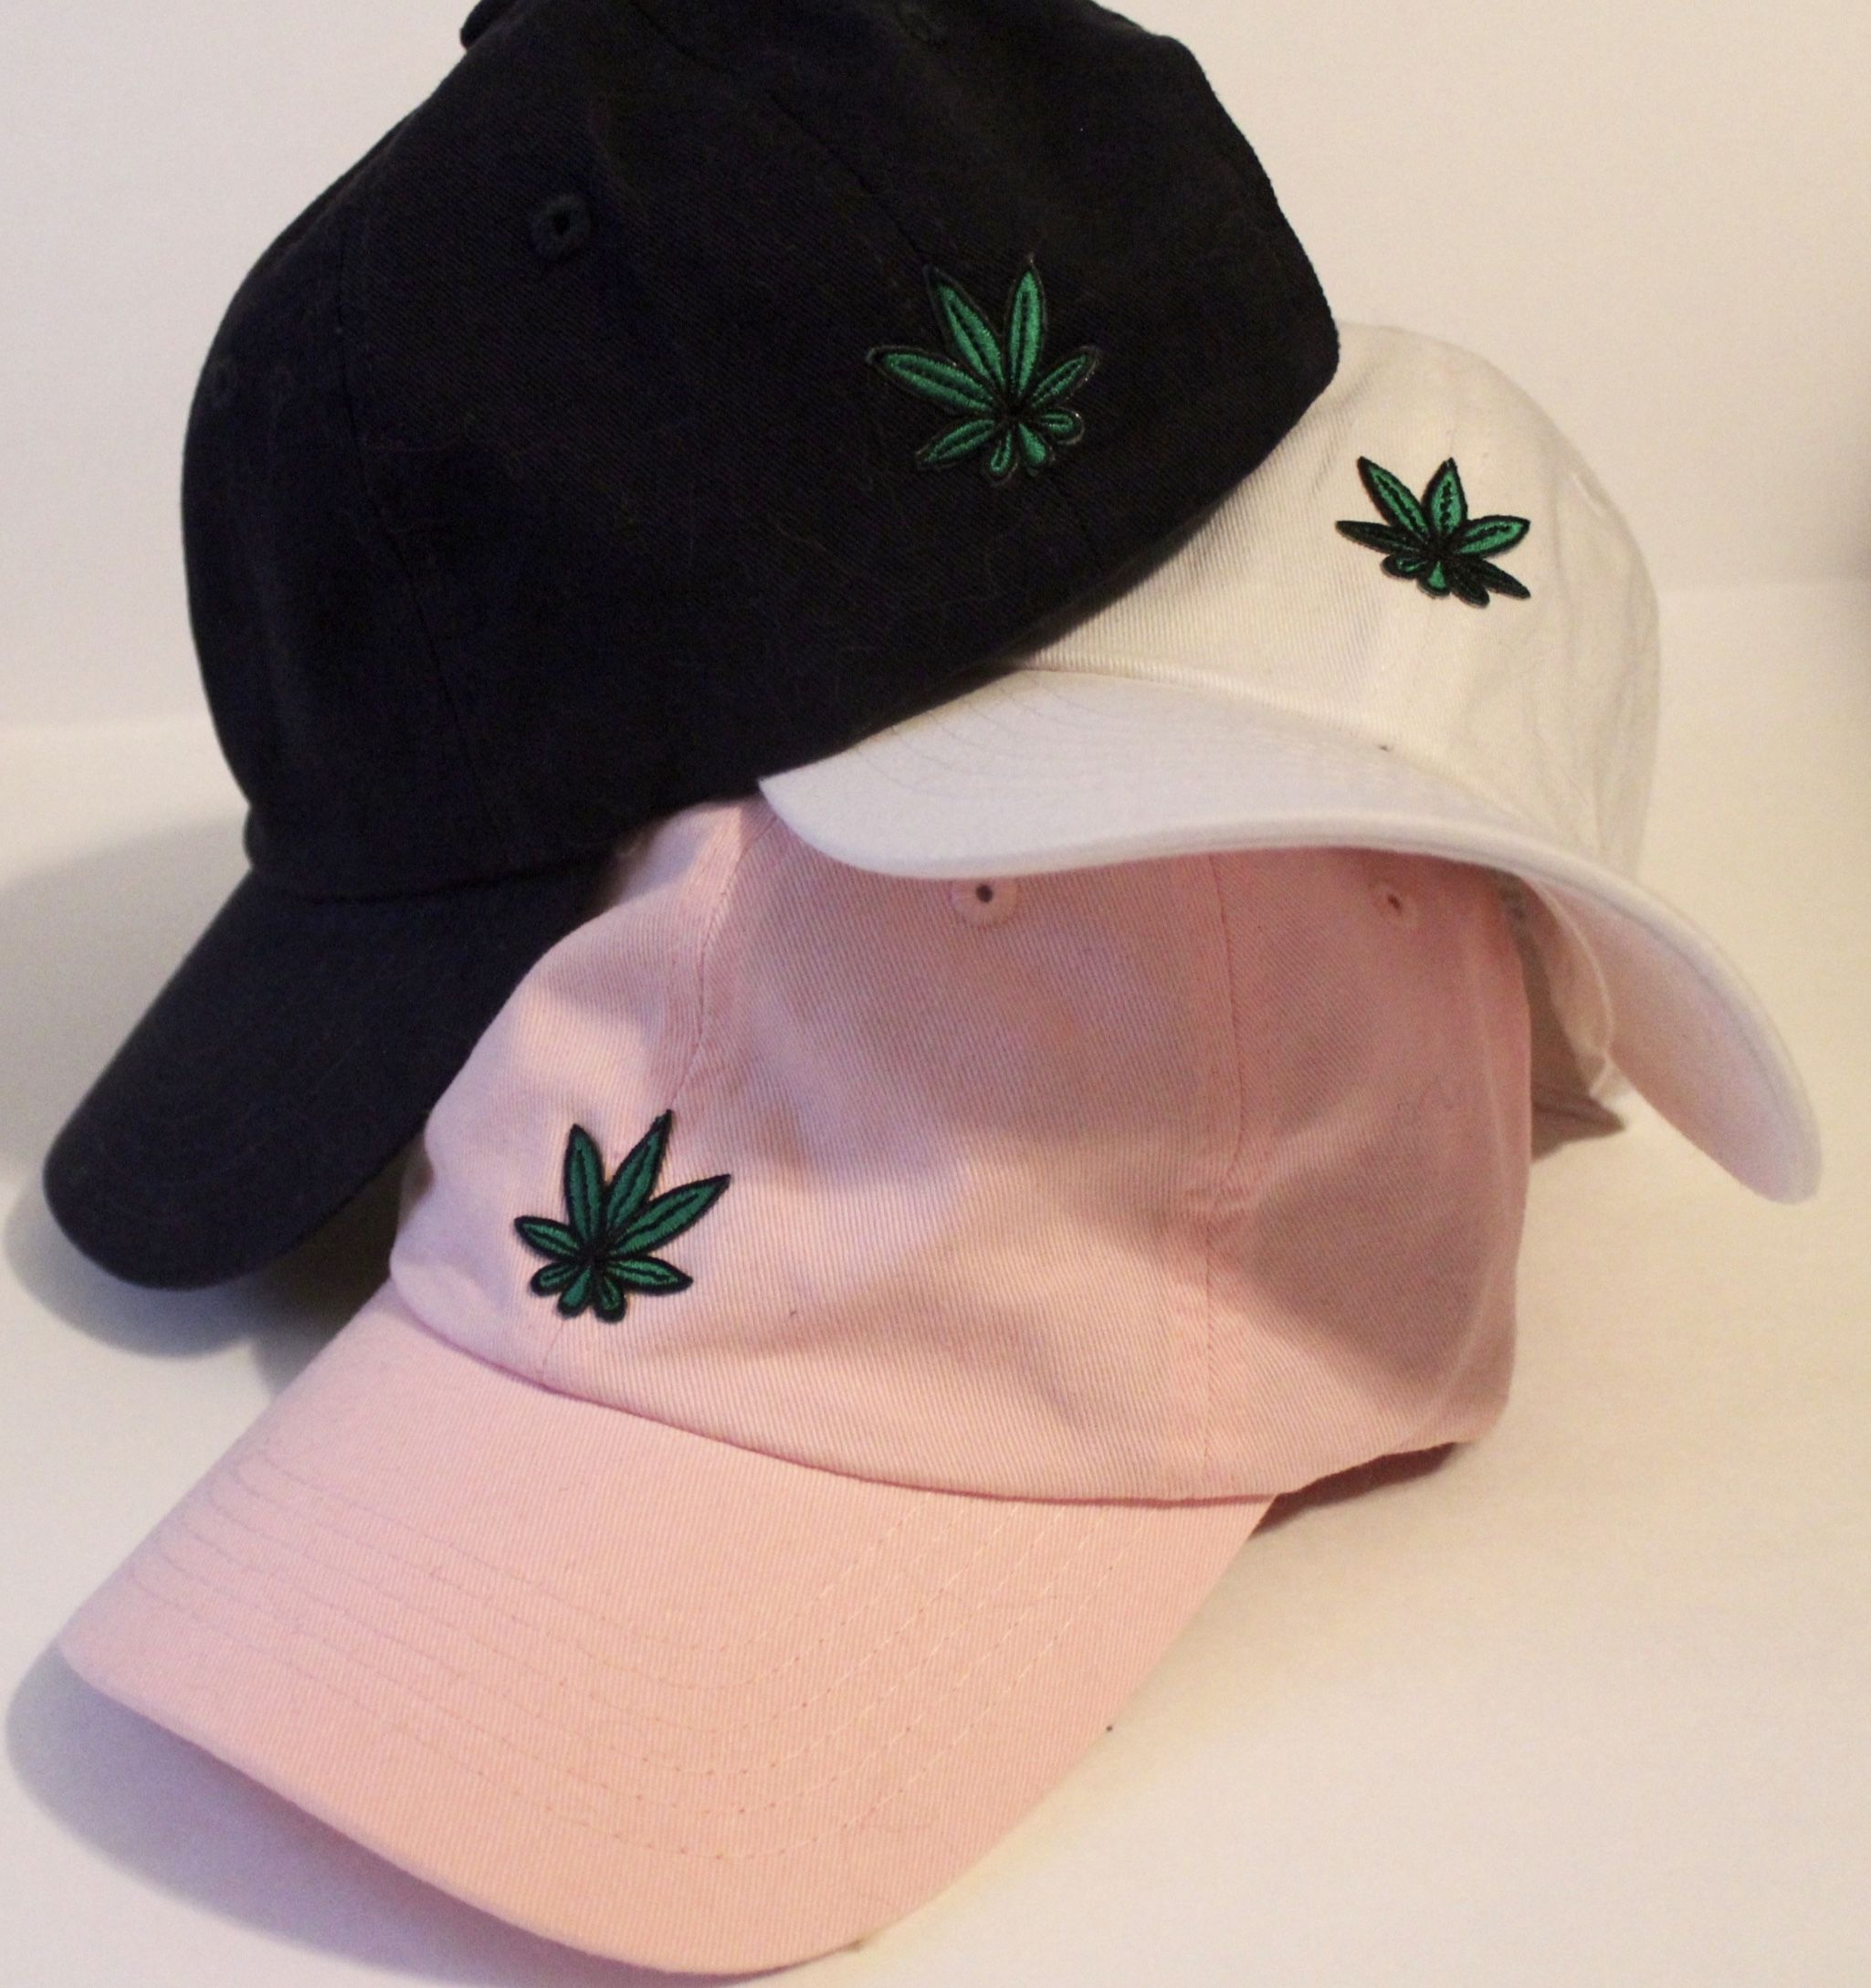 Women s small-fit baseball cap. Light pink color with weed patch.   smallheadproblems  lidlehats  lidle  xsbaseballhat  xsbaseballcap   smallheadhat   ... a4cd46de4f5